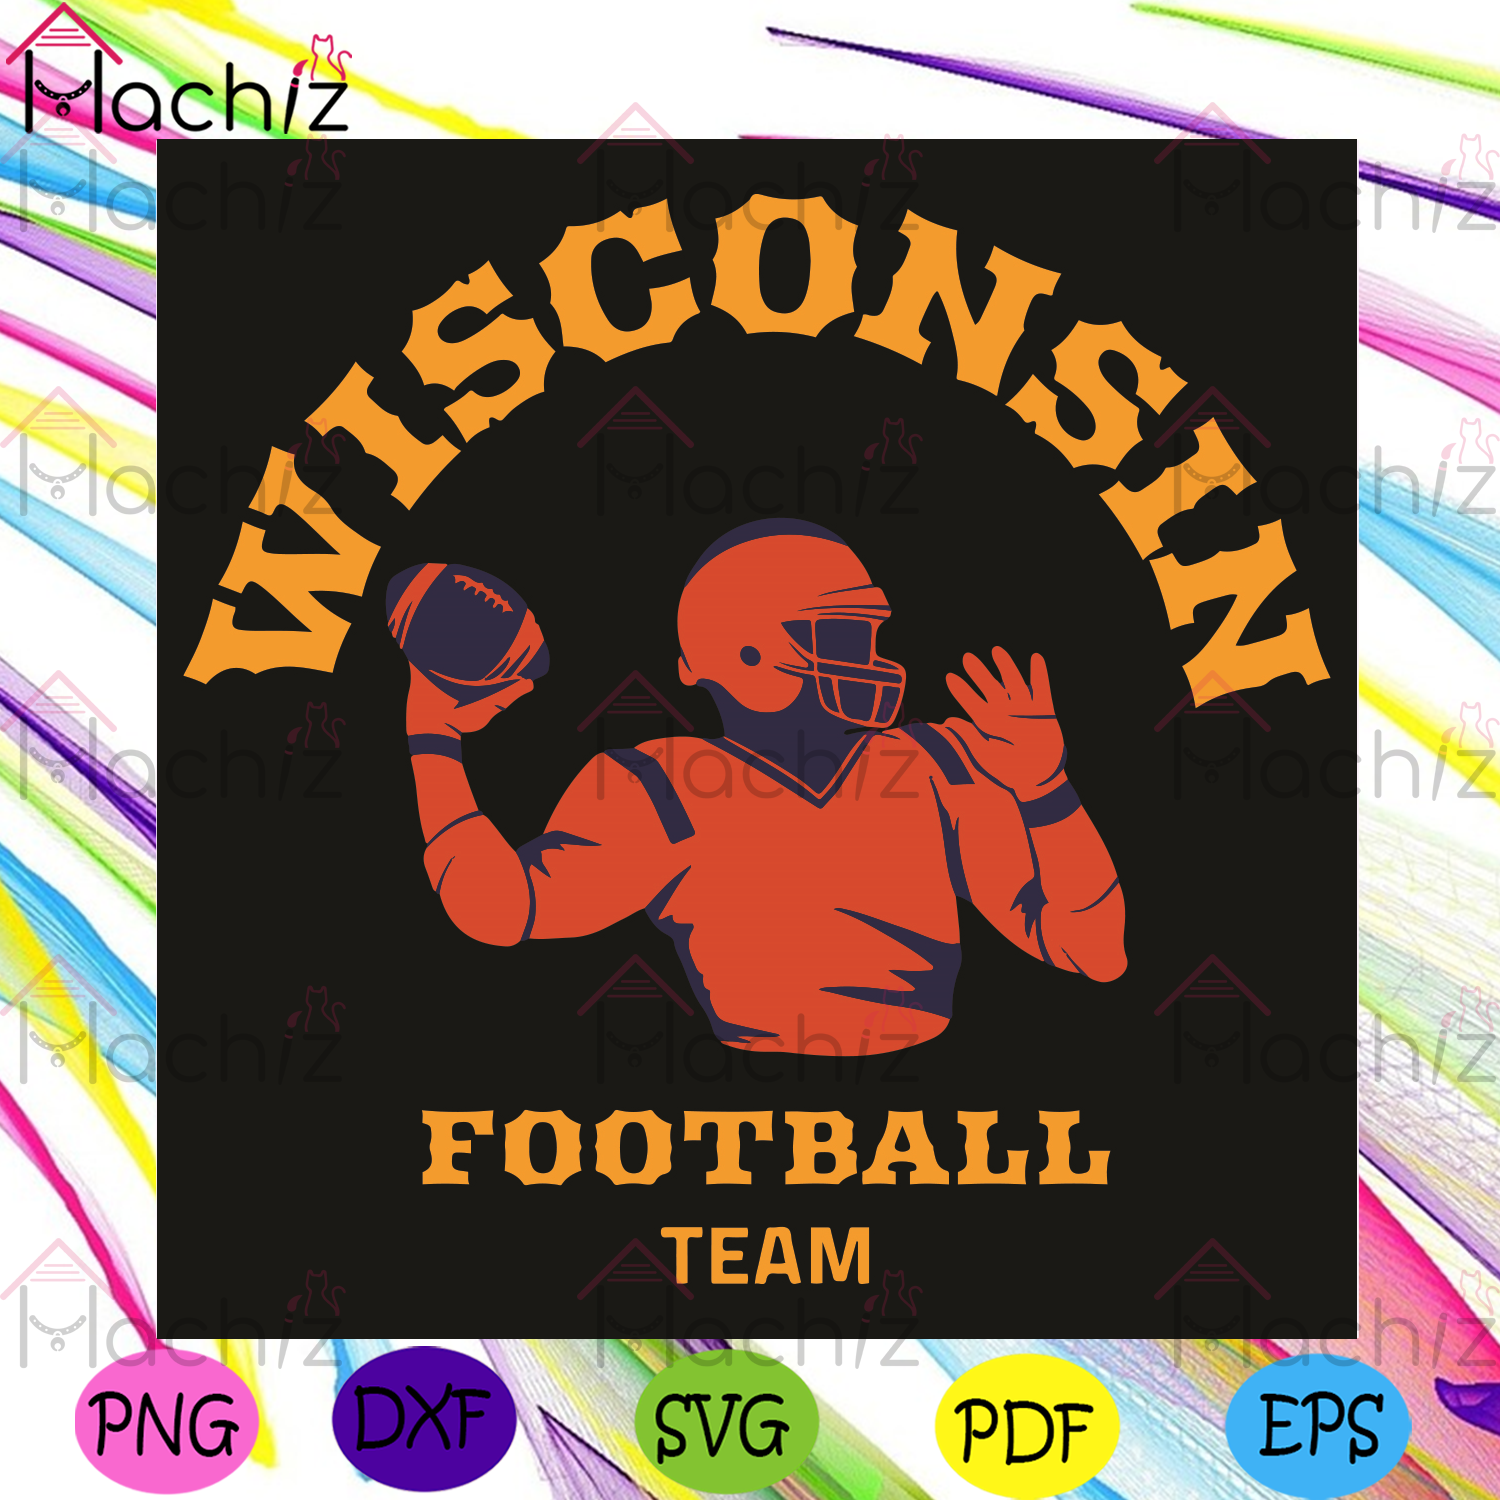 Wisconsin Football Team Svg, Sport Svg, Wisconsin Football Svg, Wisconsin Football Fans Svg, Wisconsin Football Lovers Svg, Wisconsin Football Gifts Svg, Wisconsin Football Players Svg, Football Players Svg, Football Svg